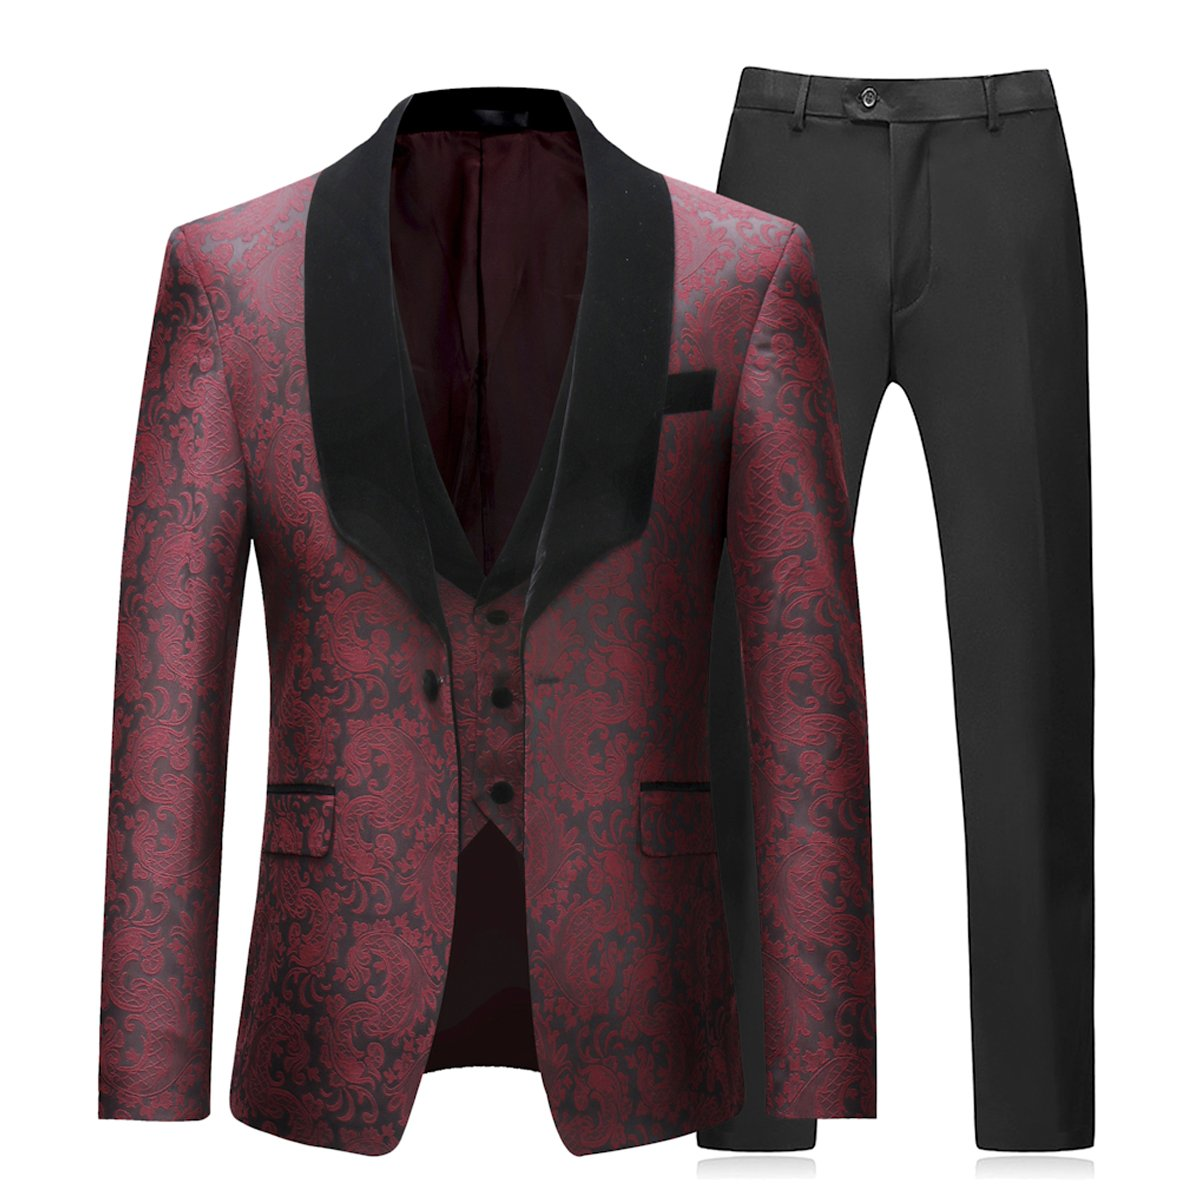 Boyland Mens 3 Piece Tuxedos Vintage Groomsmen Wedding Suit Complete Outfits(Jackets+Vest+Trousers) Burgundy by Boyland